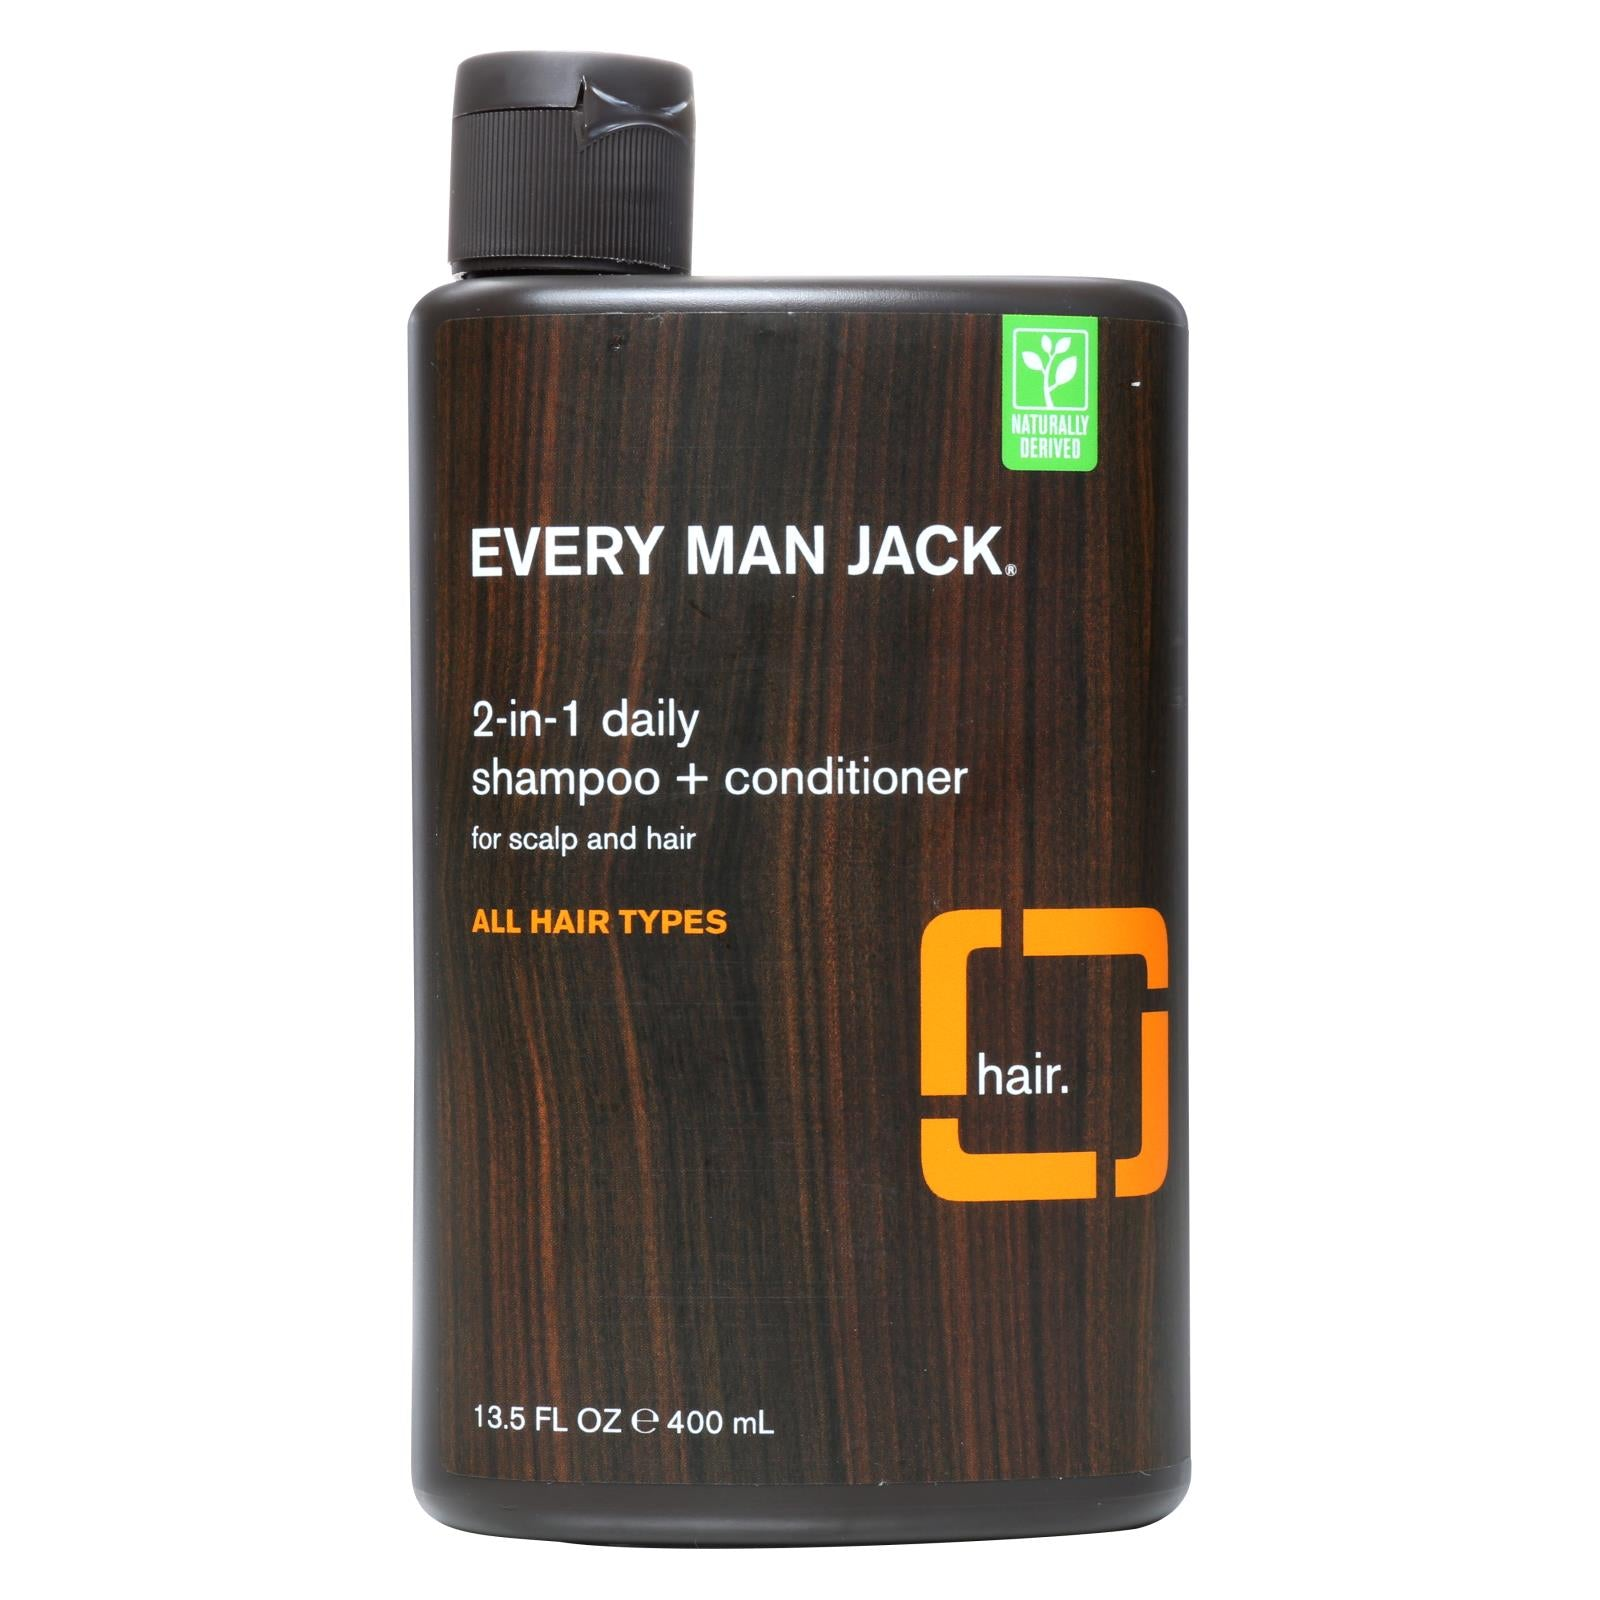 Every Man Jack 2 In 1 Shampoo Plus Conditioner - Daily - Scalp And Hair - All Hair Types - 13.5 Oz HG0516450